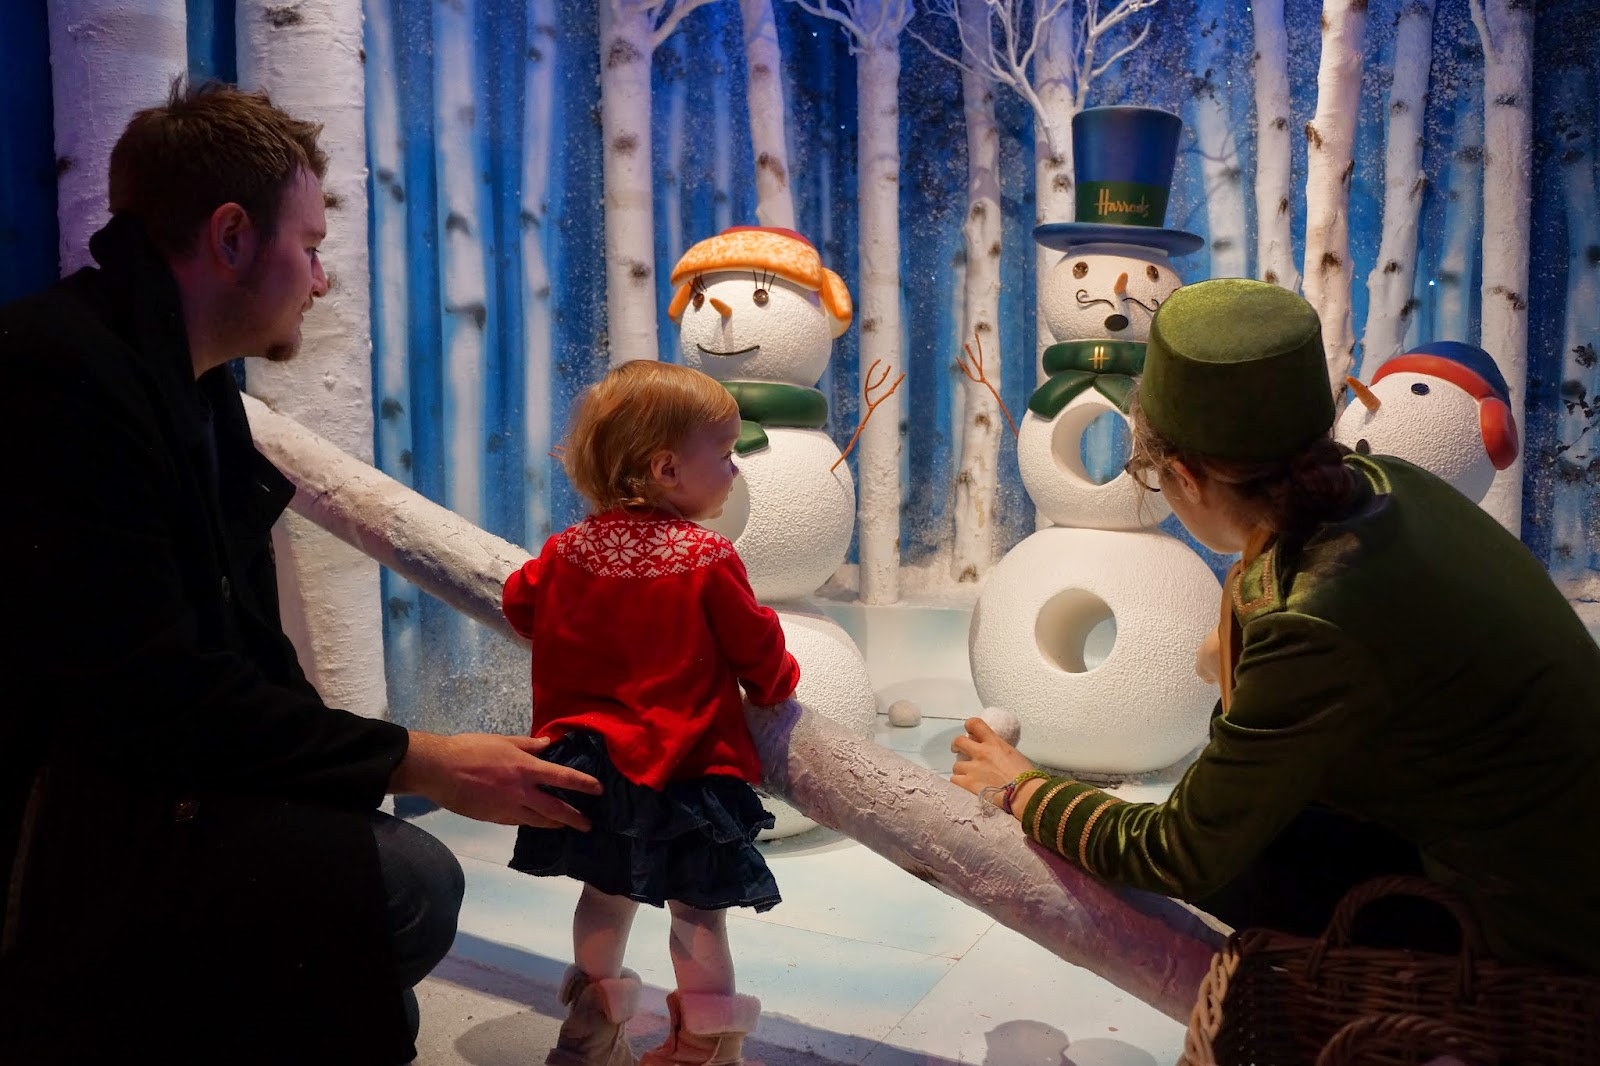 harrods christmas santa's grotto 2014 snowmen throwing snowballs